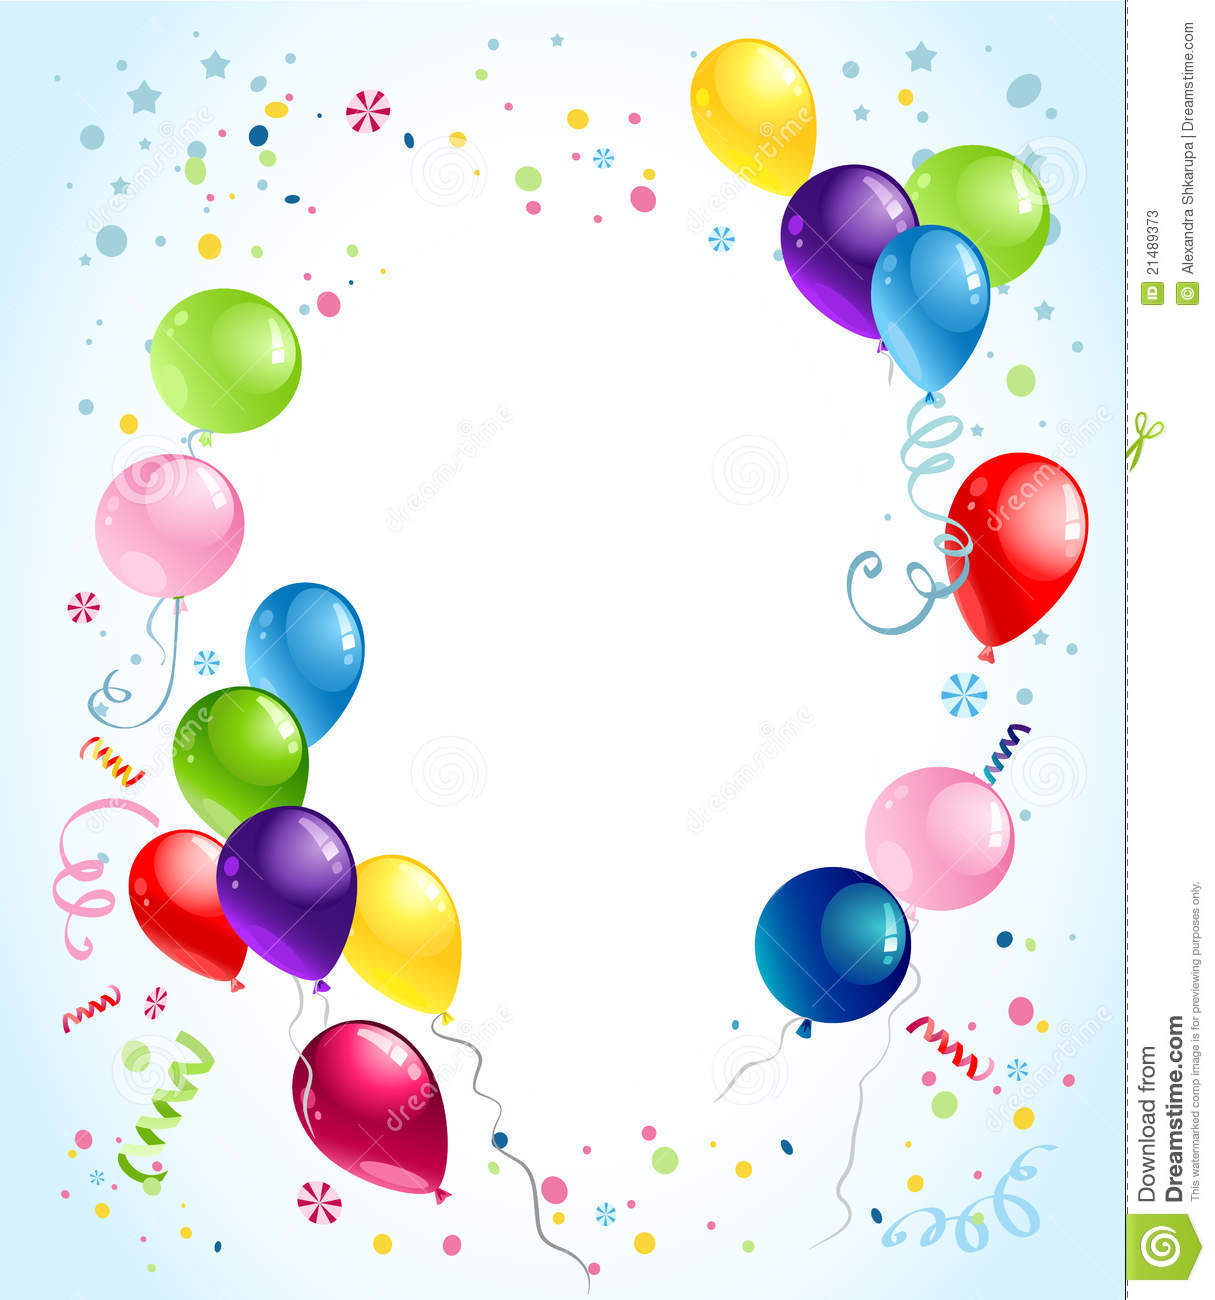 Birthday Balloons Background Stock Photos - Image: 21489373